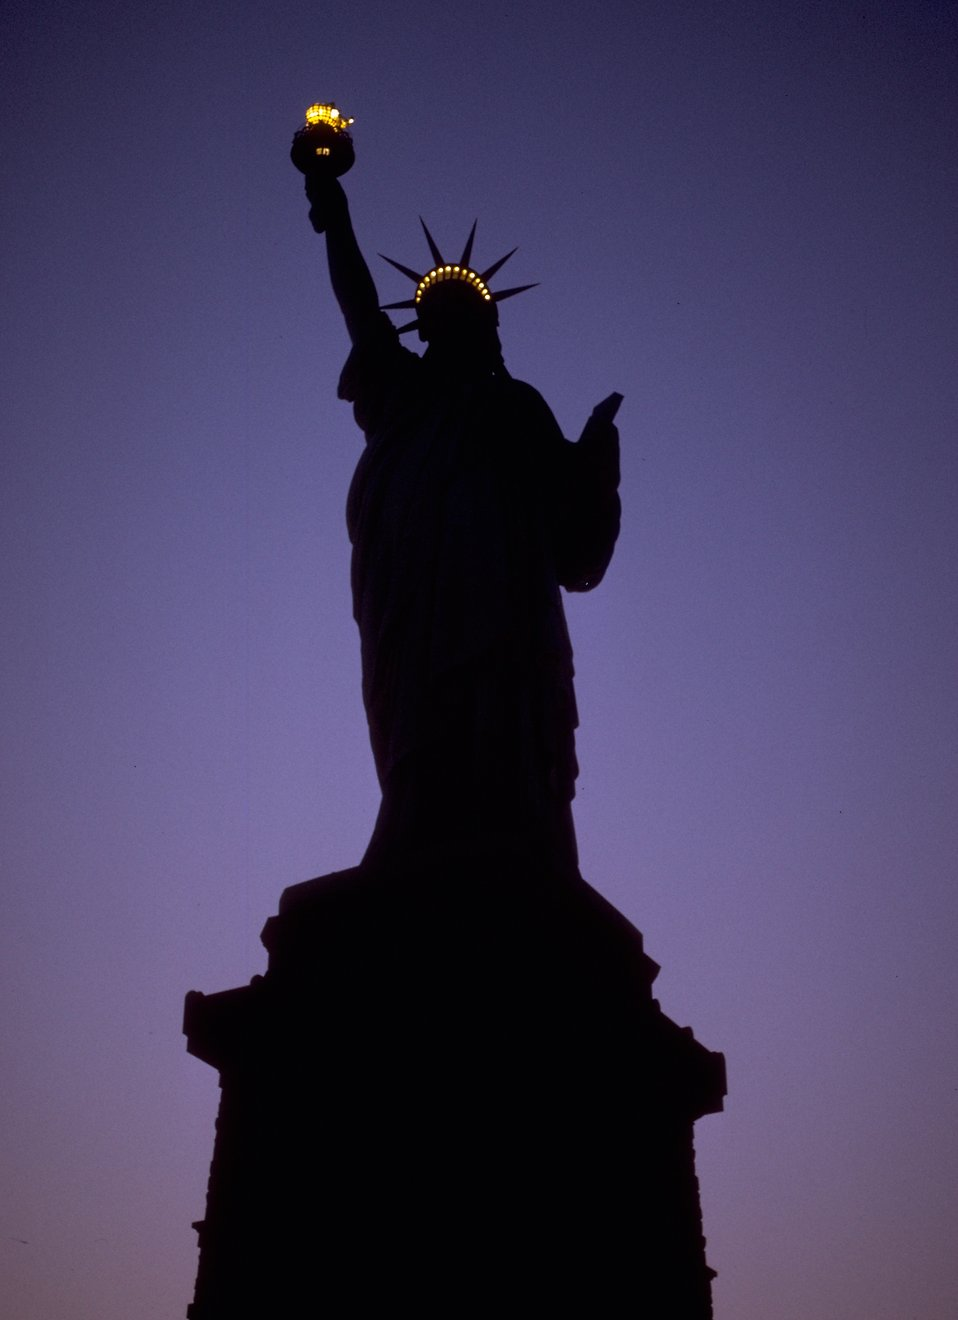 Silhouette of the Statue of Liberty monument at night : Free Stock Photo